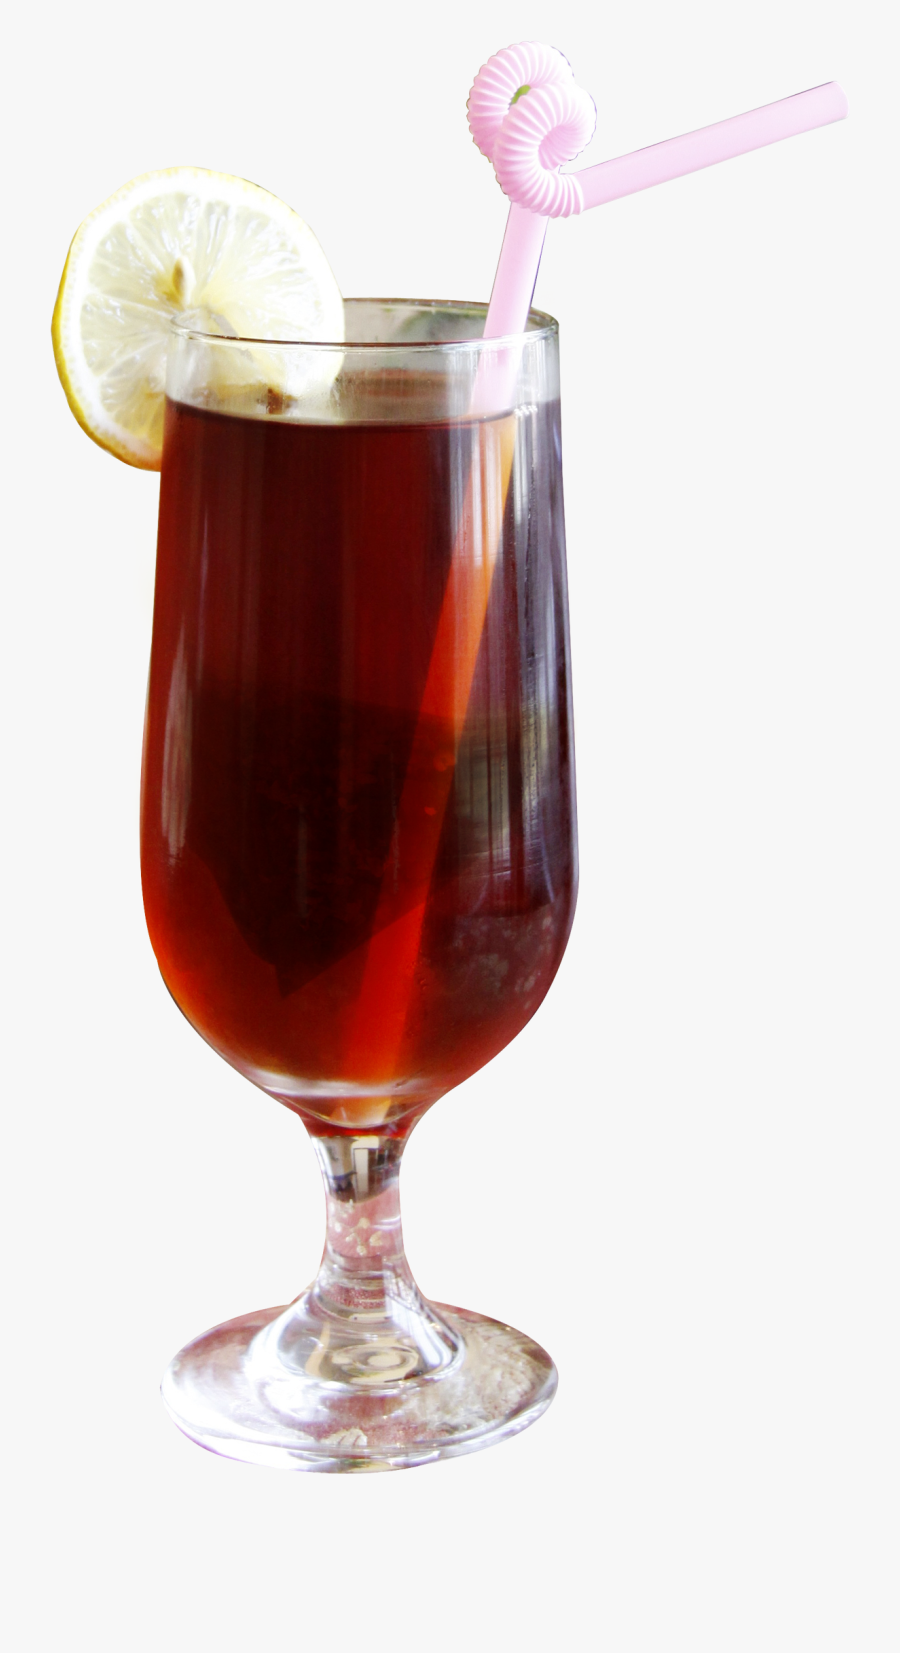 Clip Art Drinking Beer With A Straw - Copas De Vino Hervido Png, Transparent Clipart